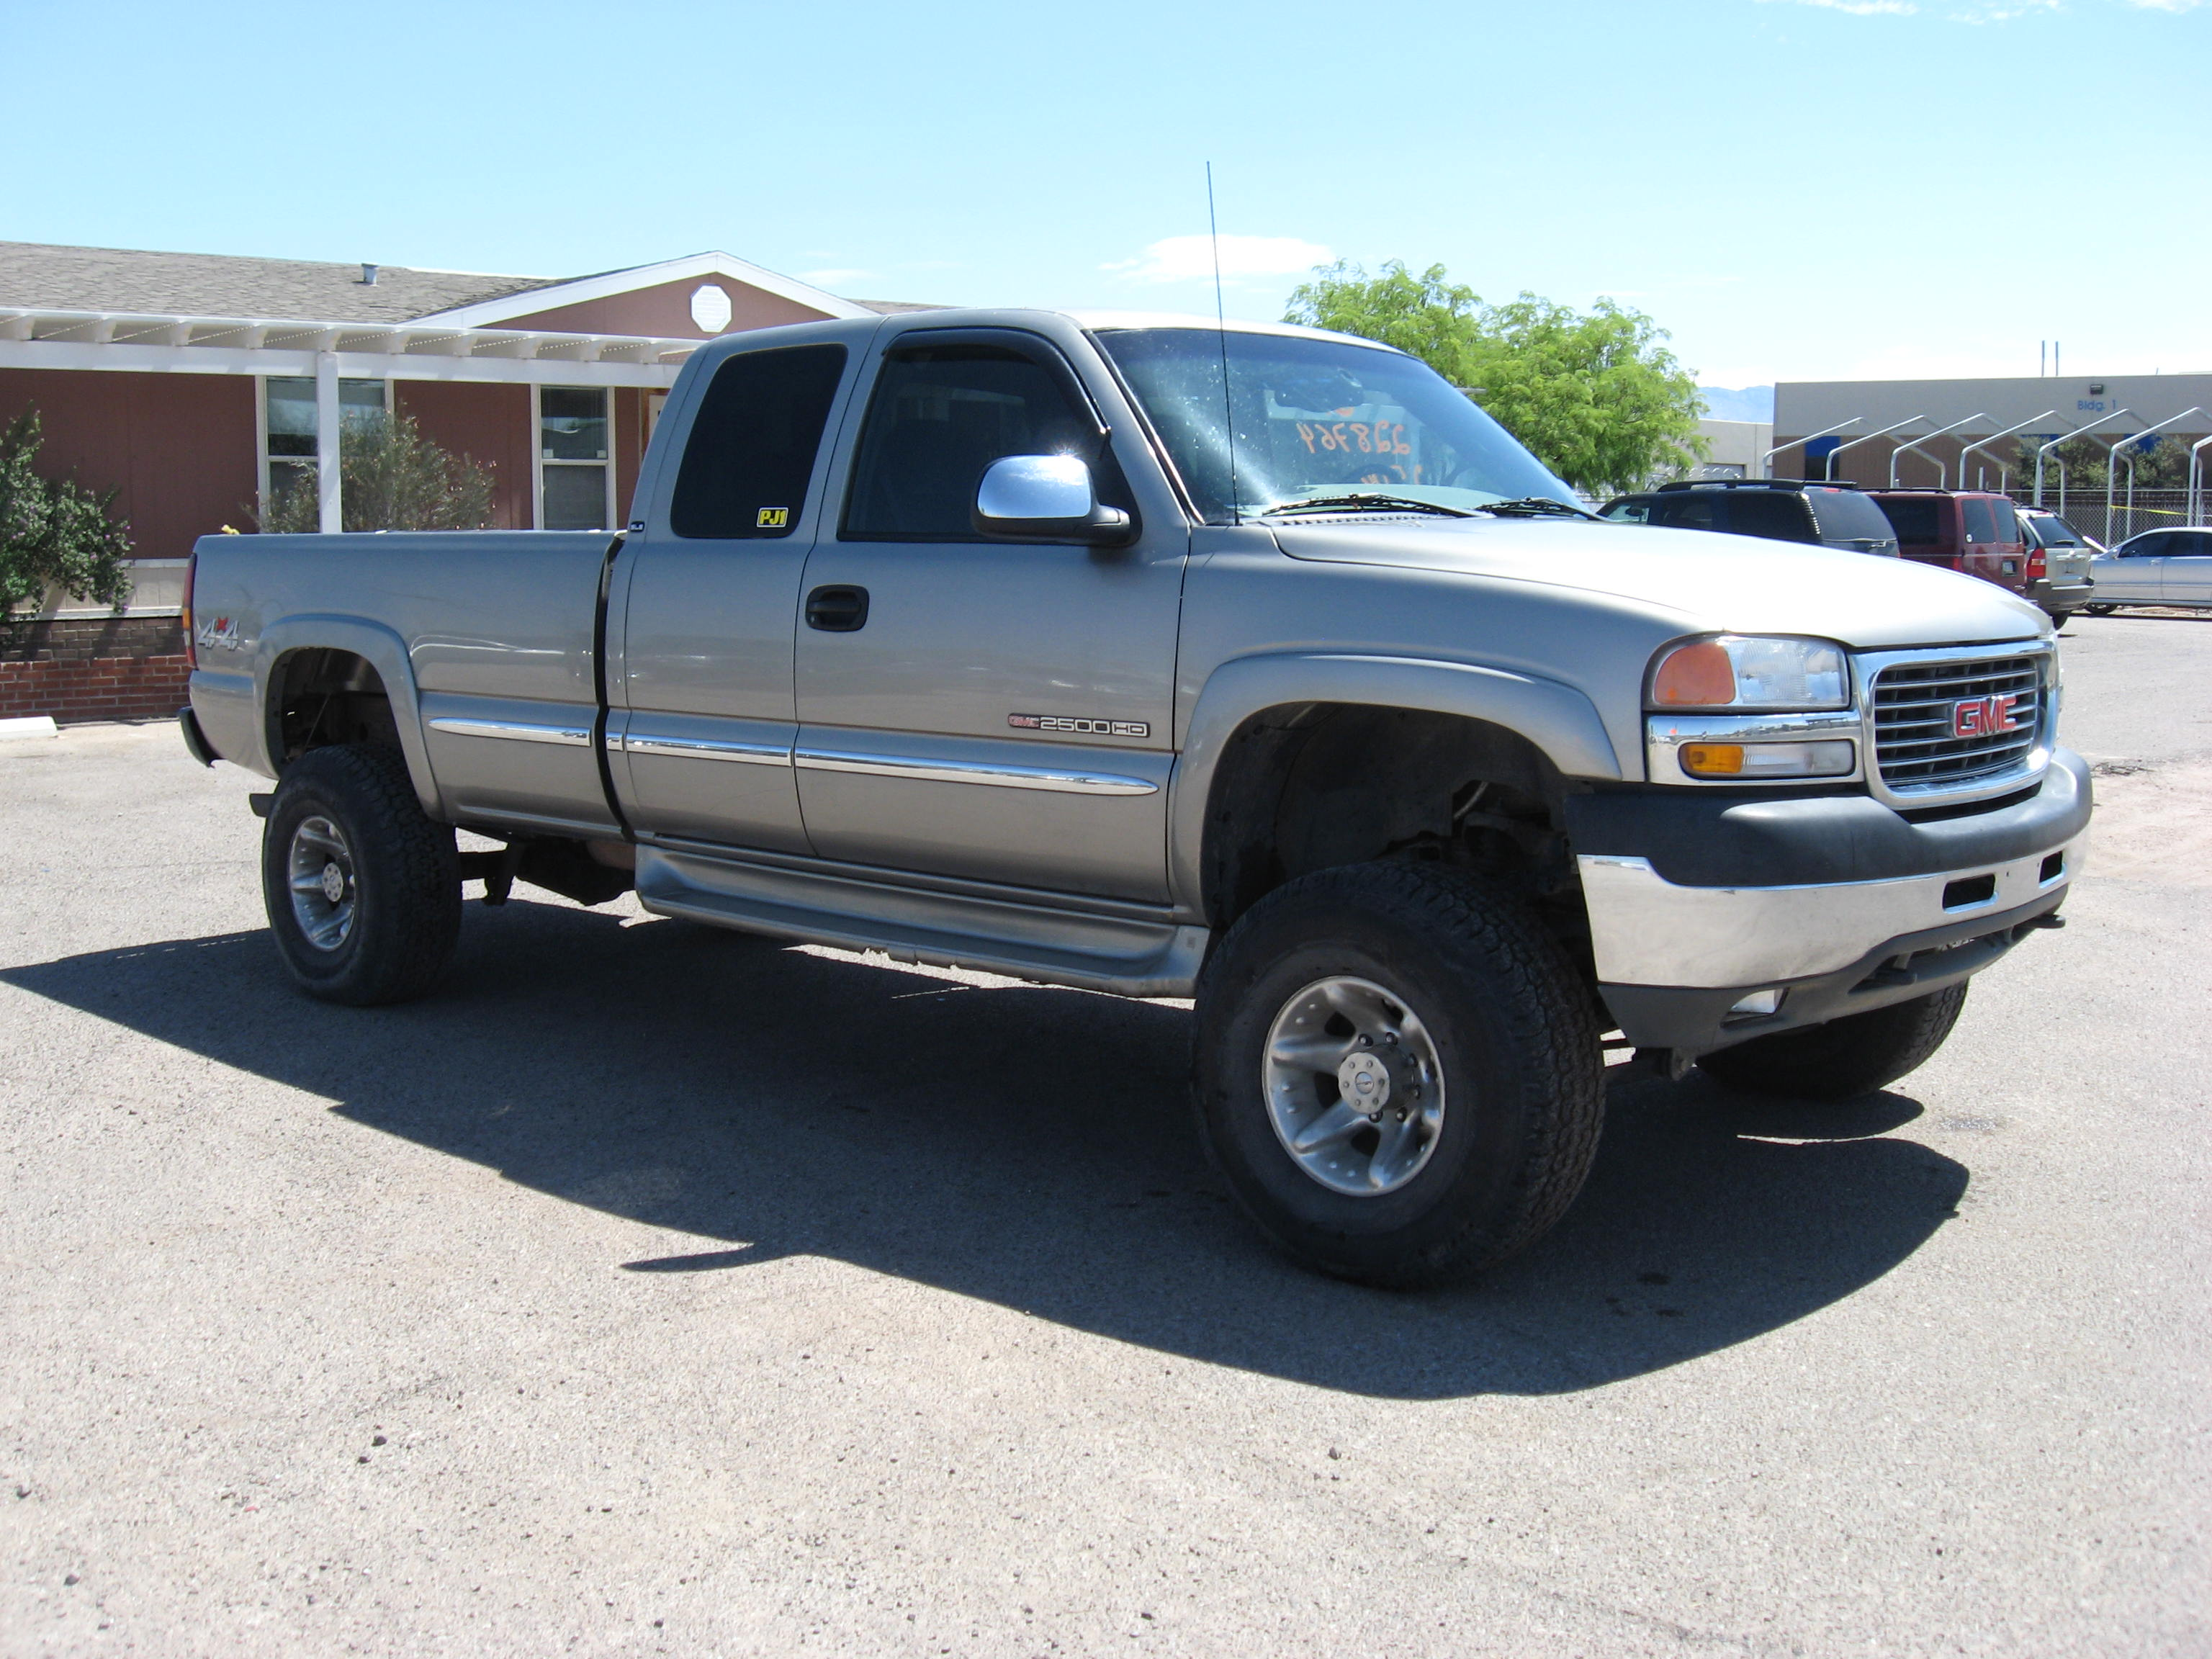 2001 GMC Sierra 2500hd #1